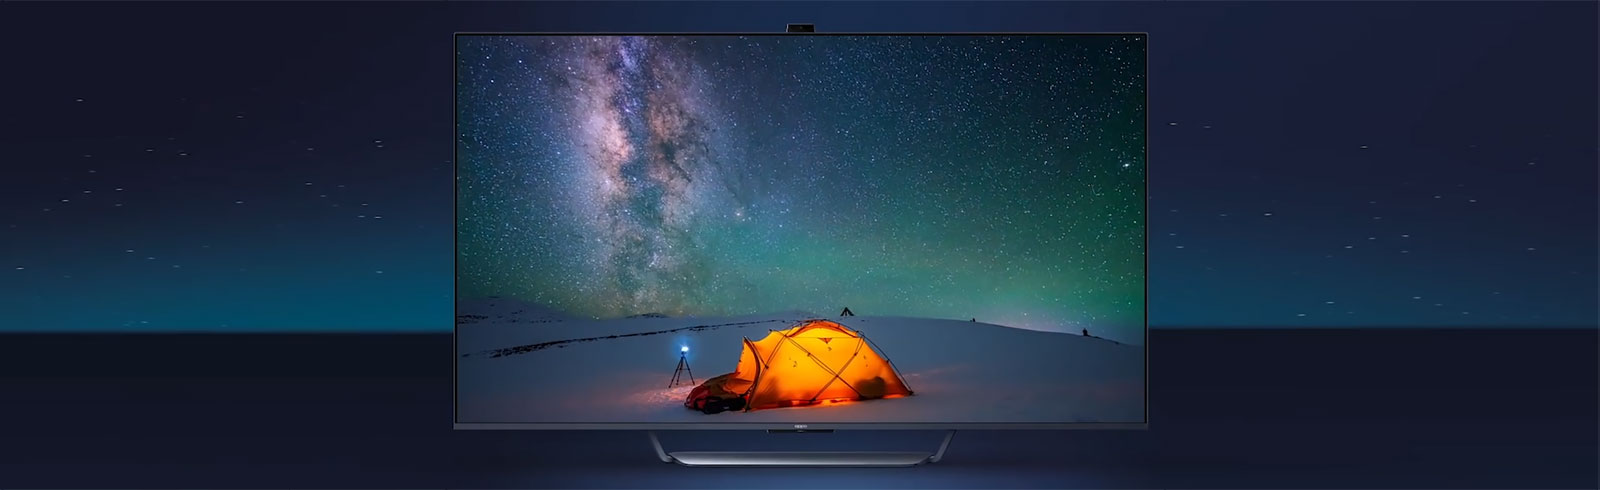 Oppo teases its 4K TV that will be unveiled in October